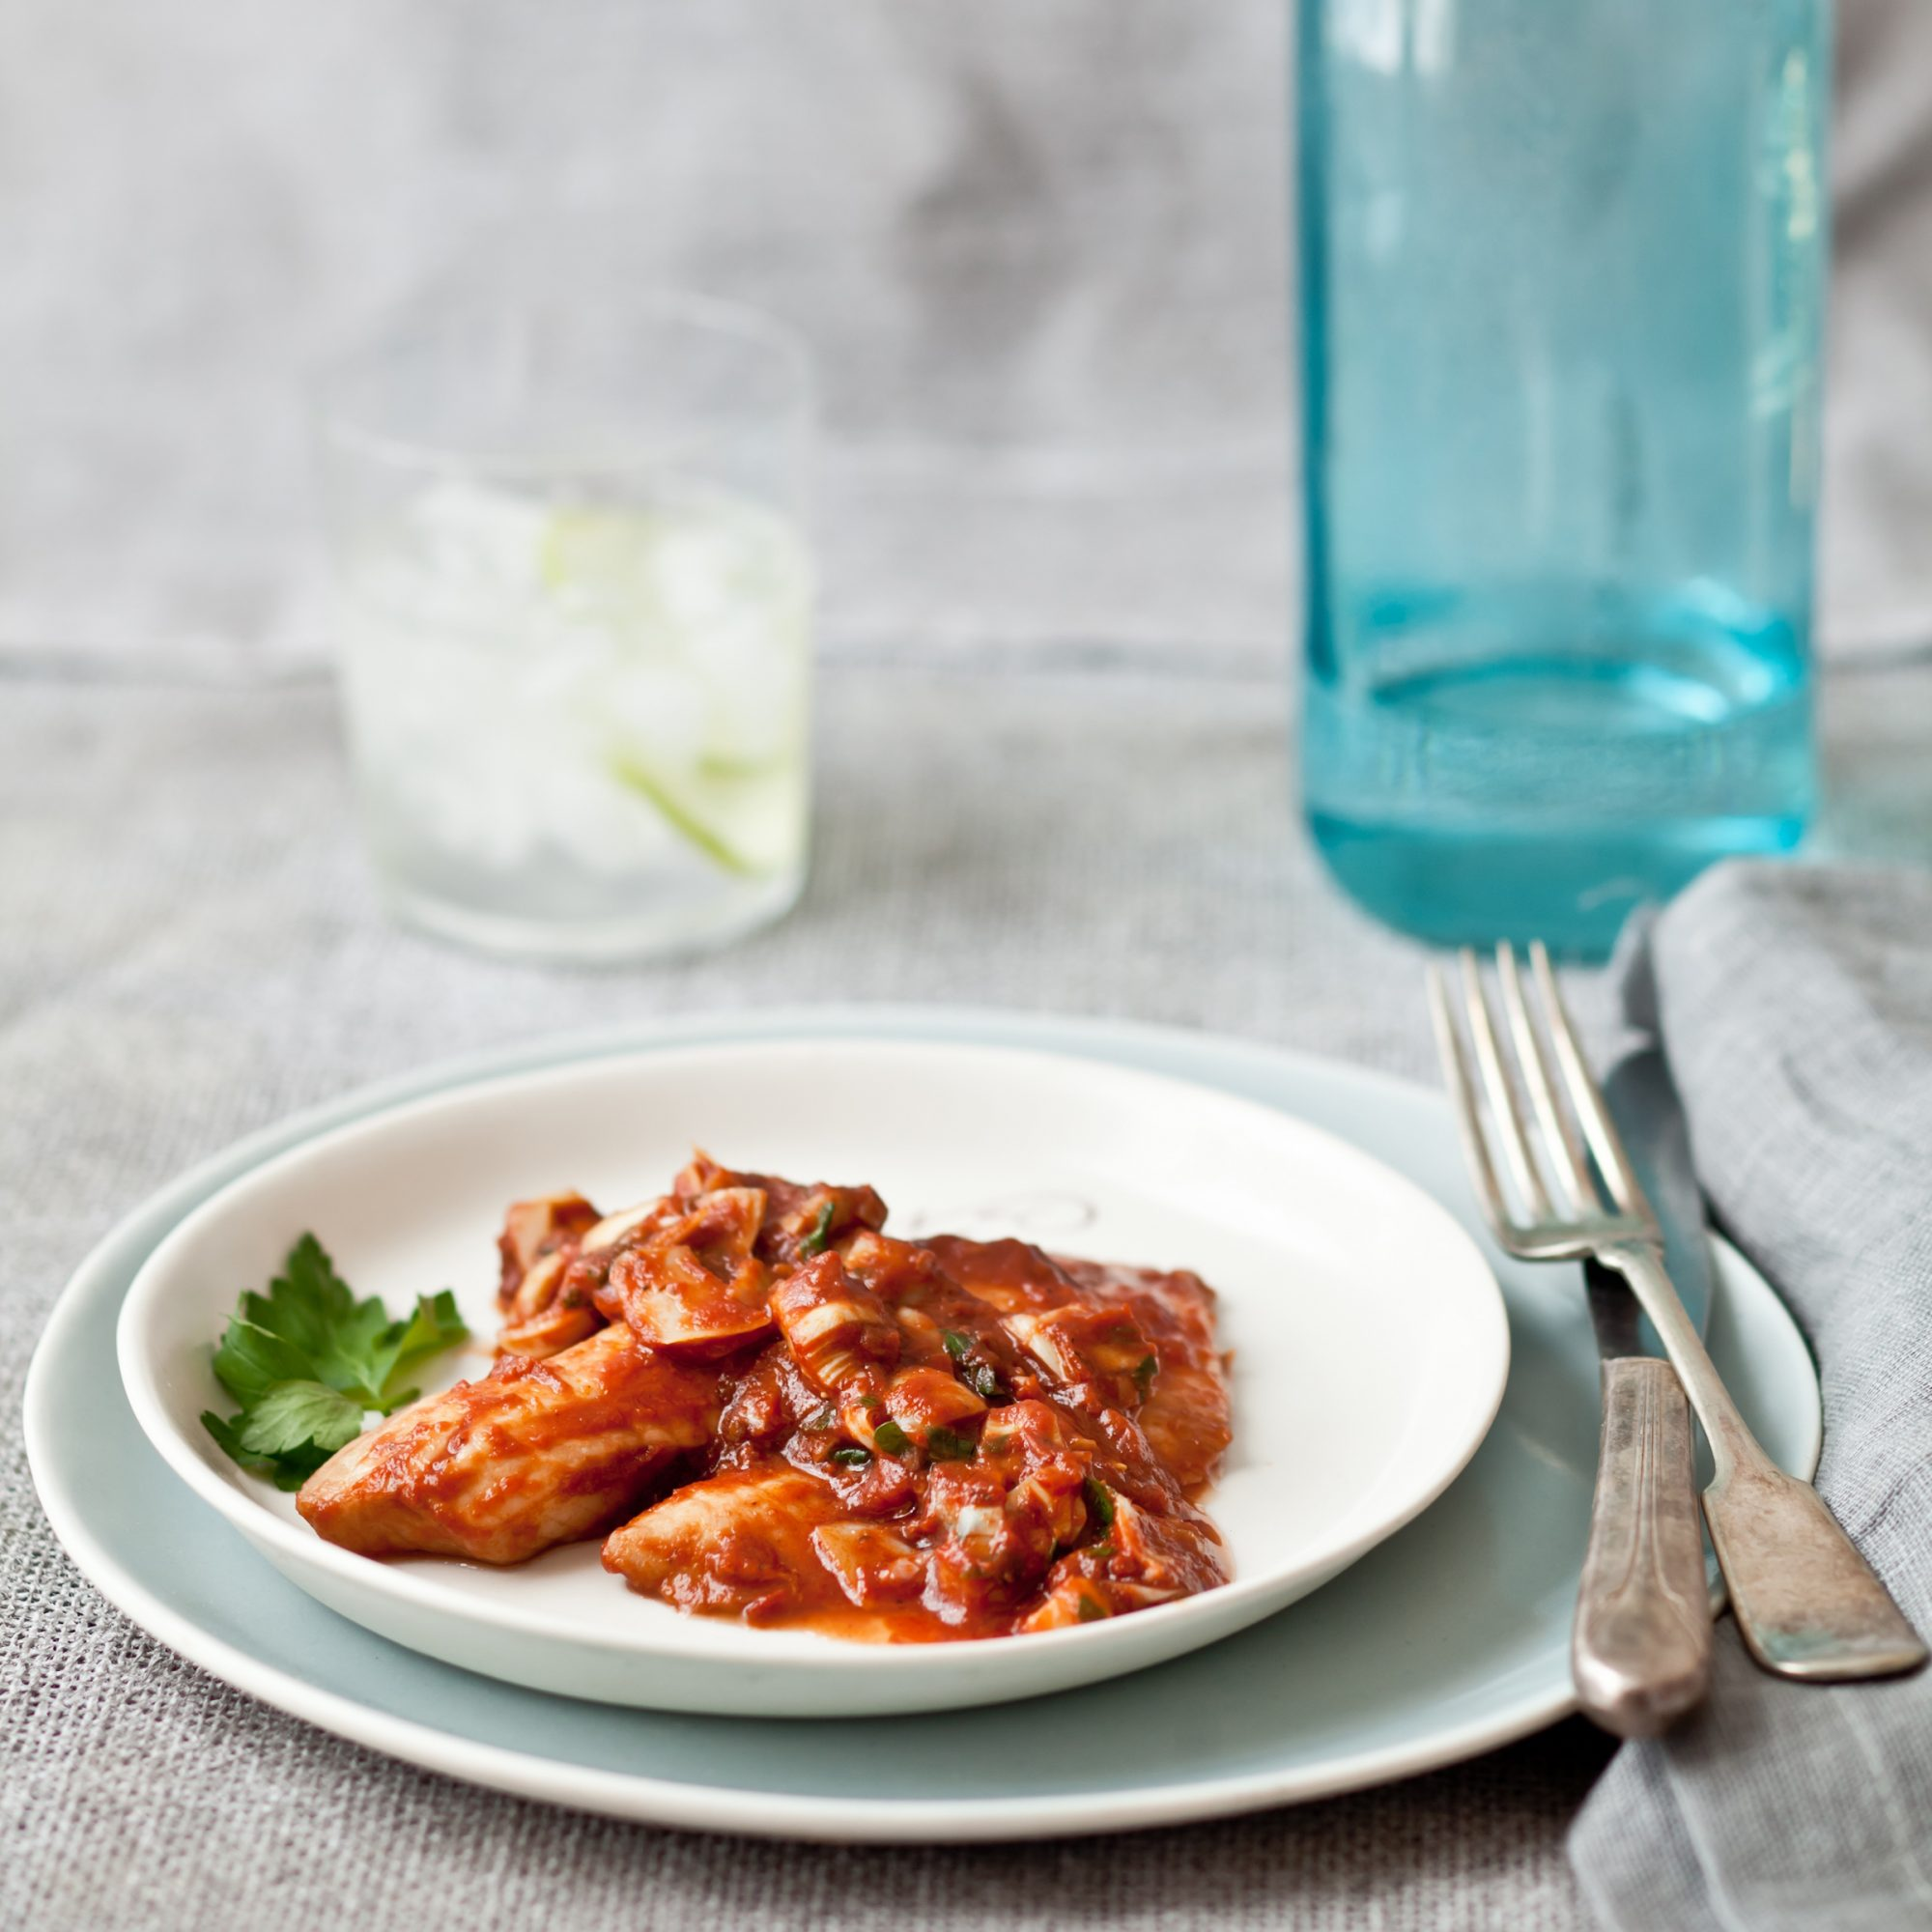 Tilapia with Tomato and Artichoke Sauce